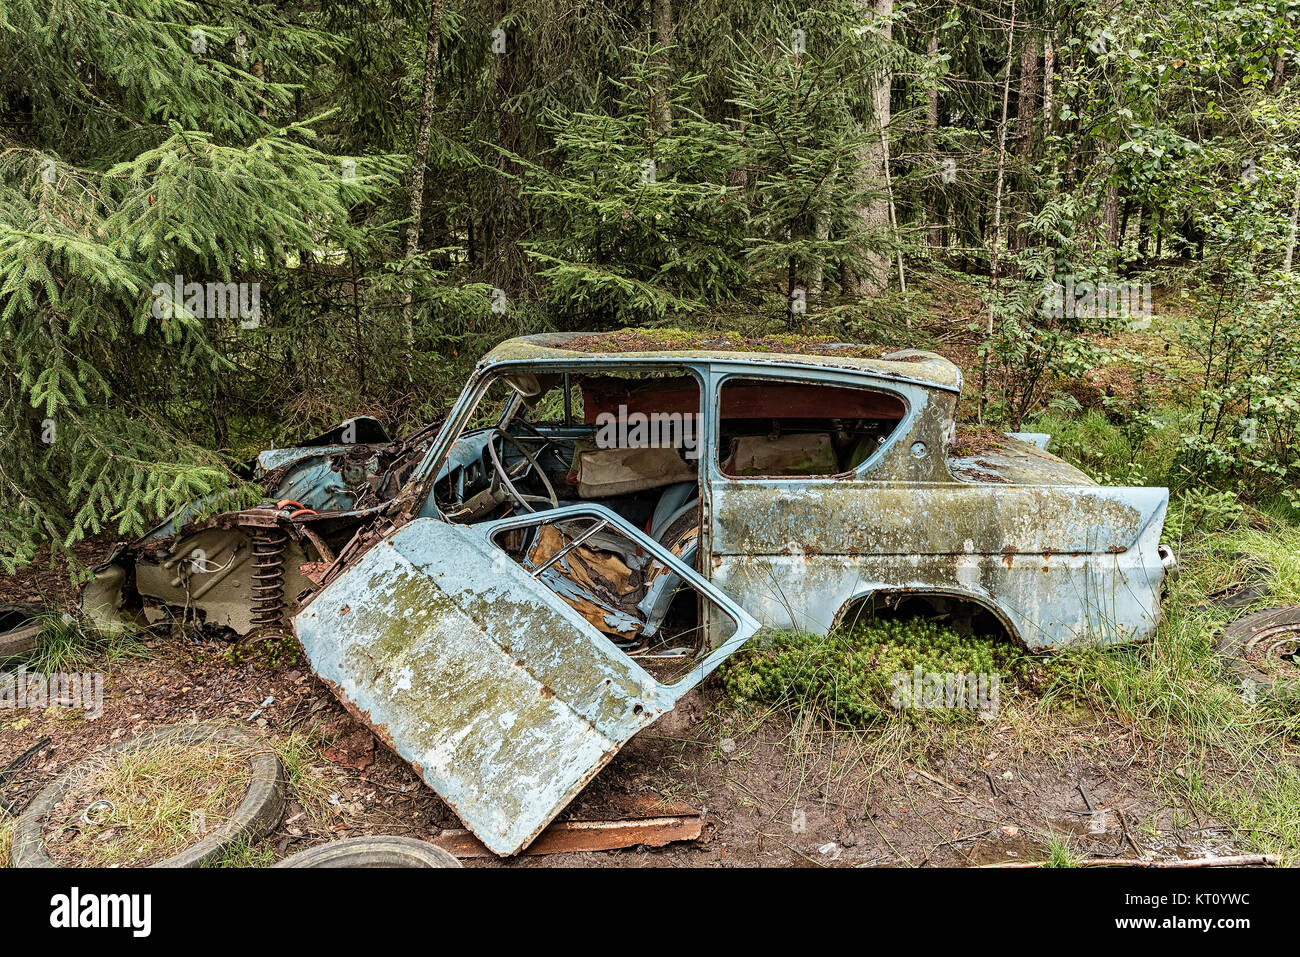 KIRKOE MOSSE, SWEDEN - 28 JULY 2016: A car graveyard situated in a forest at Kirkoe Mosse, Sweden. - Stock Image